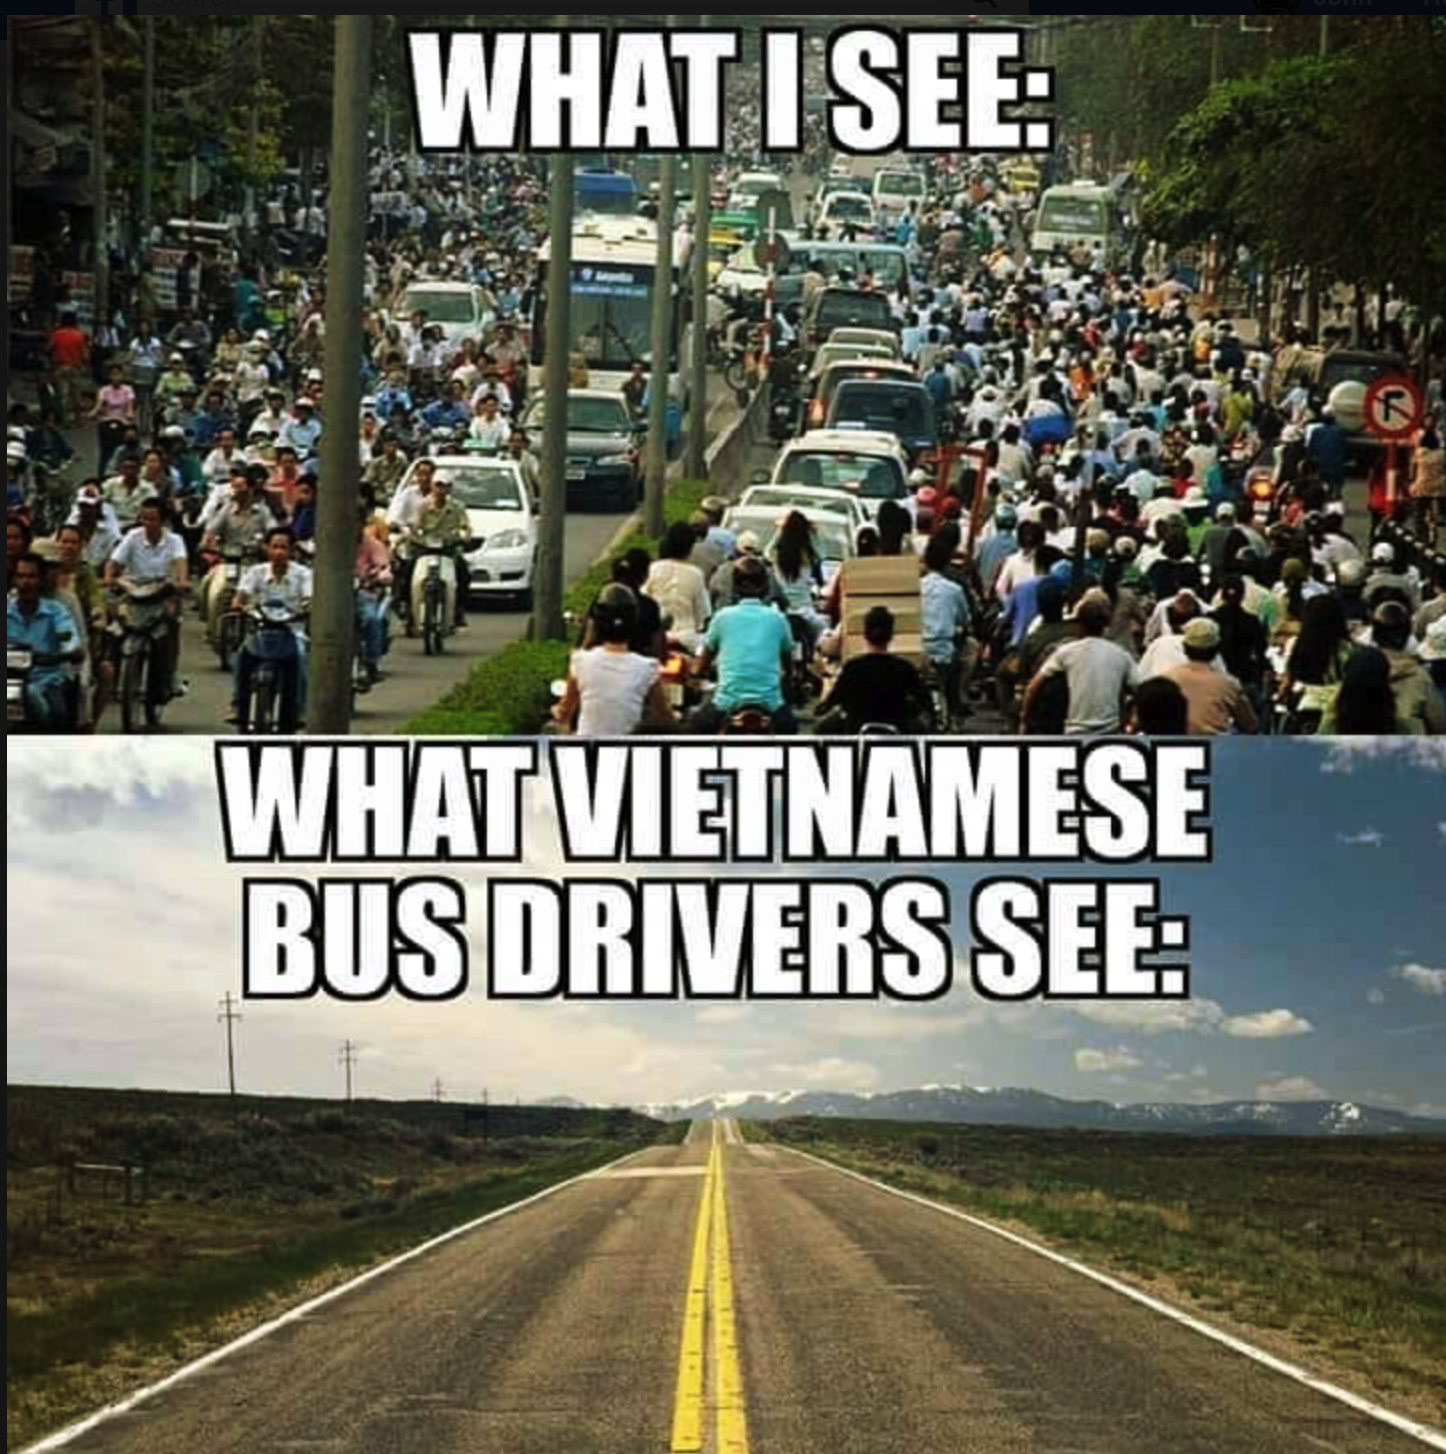 Riding a Bus in Vietnam is Crazy